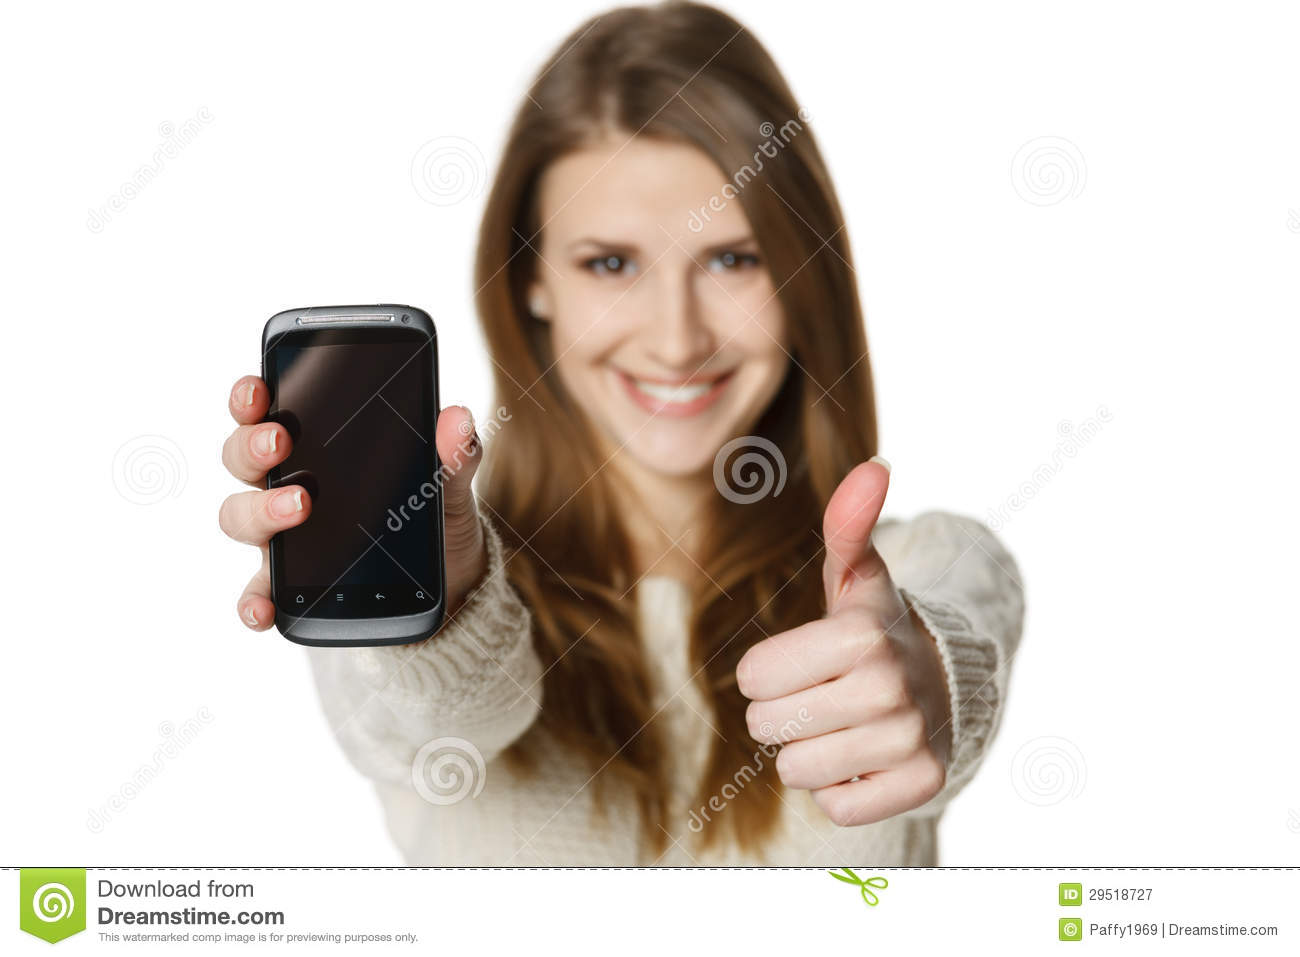 happy-woman-showing-her-mobile-phone-gesturing-thumb-up-29518727.jpg